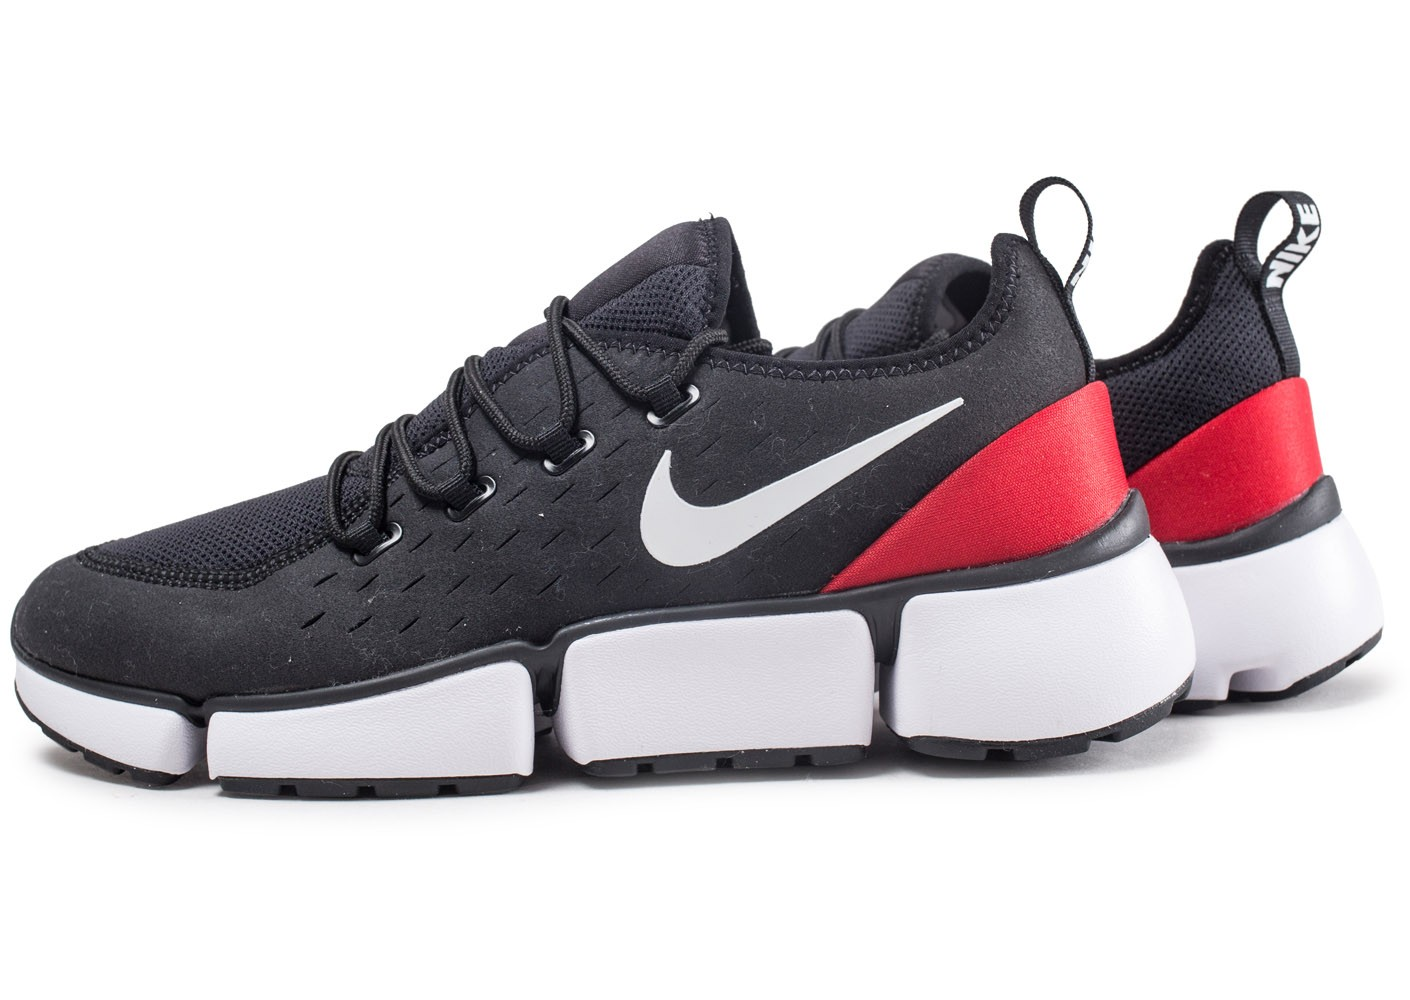 Nike Pocket Fly DM Noire Chaussures Baskets homme Chausport